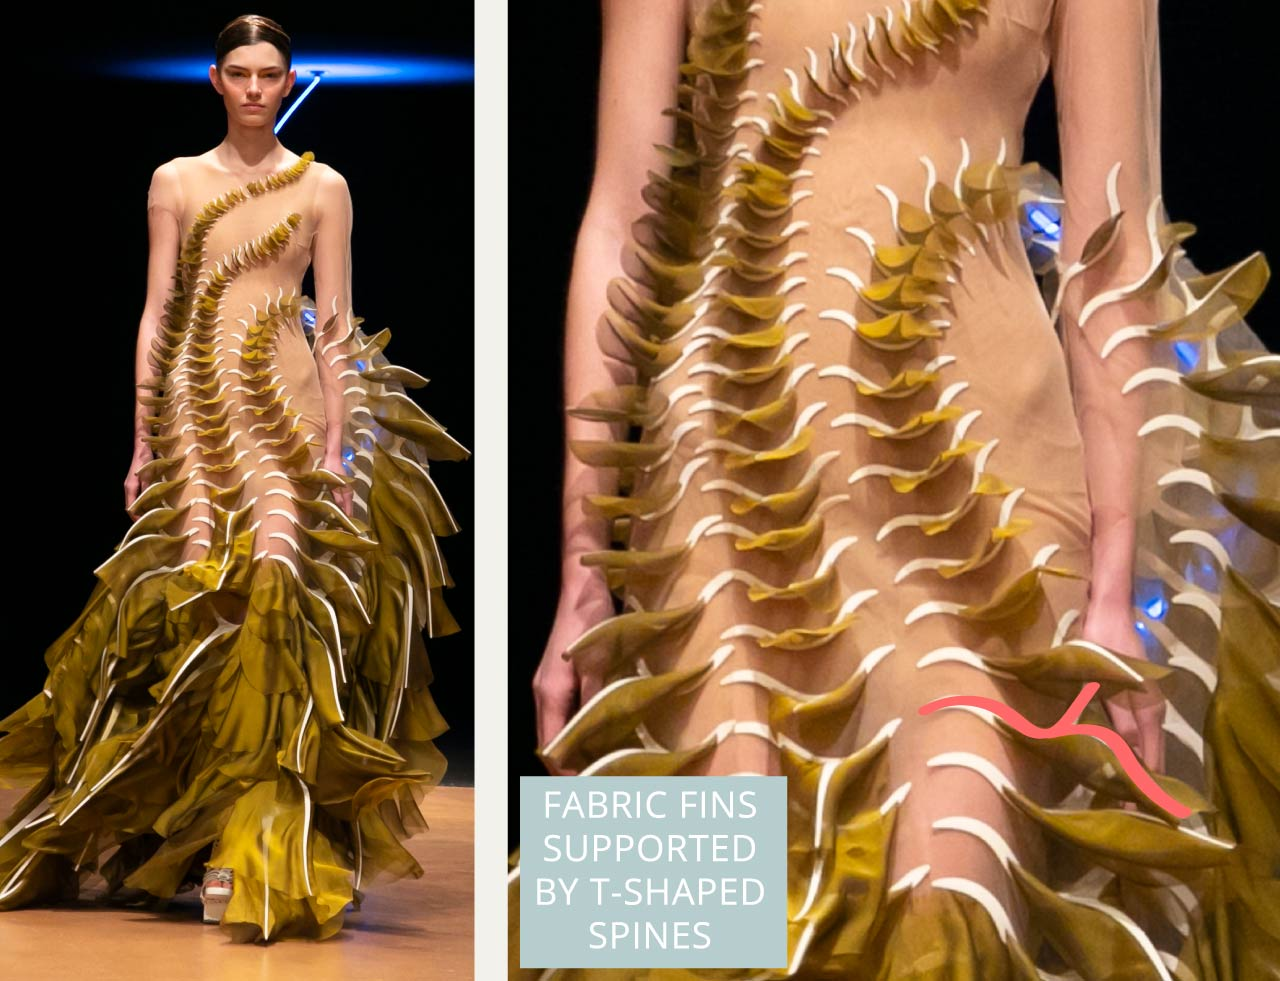 Contemporary Couture Techniques at Iris van Herpen | The Cutting Class. T-shaped spines support the fabric fins.